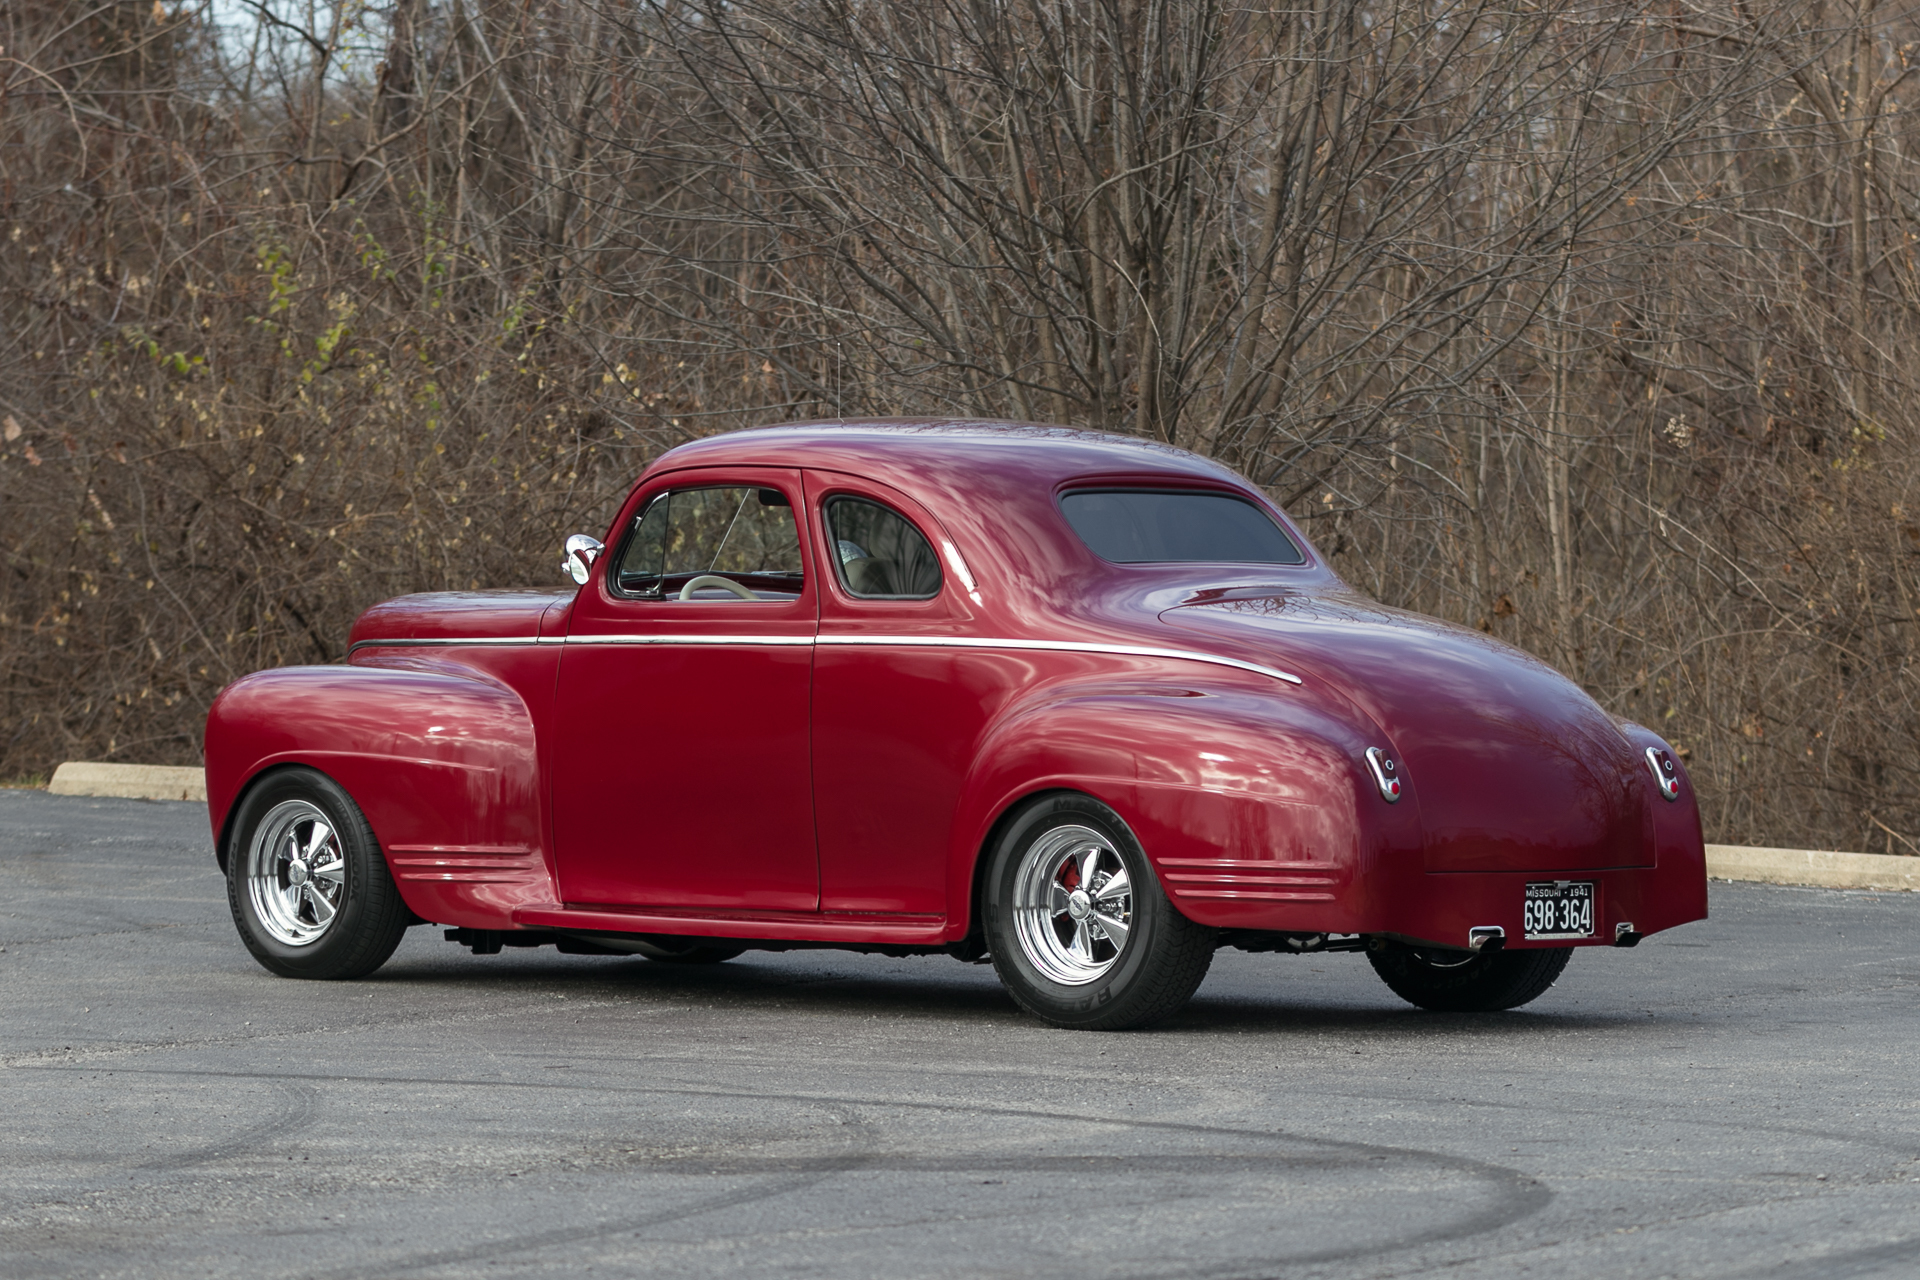 1941 Plymouth Special Deluxe Fast Lane Classic Cars 4 Door Sedan